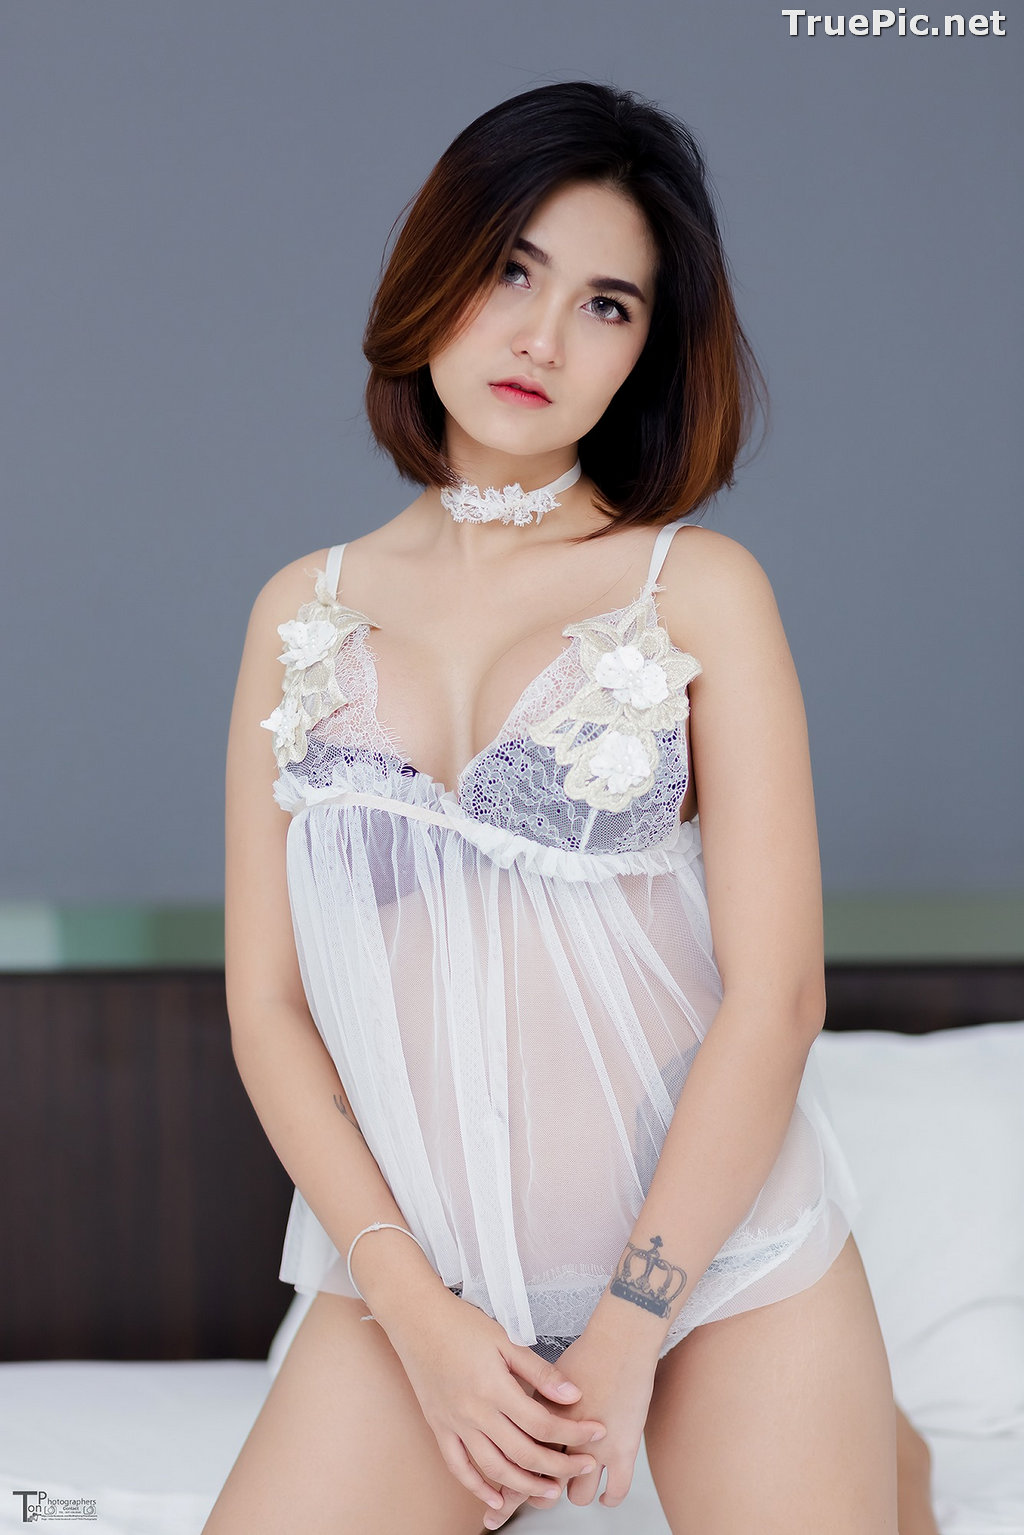 Image Thailand Sexy Model - Witsutar Ruechar - Beautiful Young Lady - TruePic.net - Picture-5